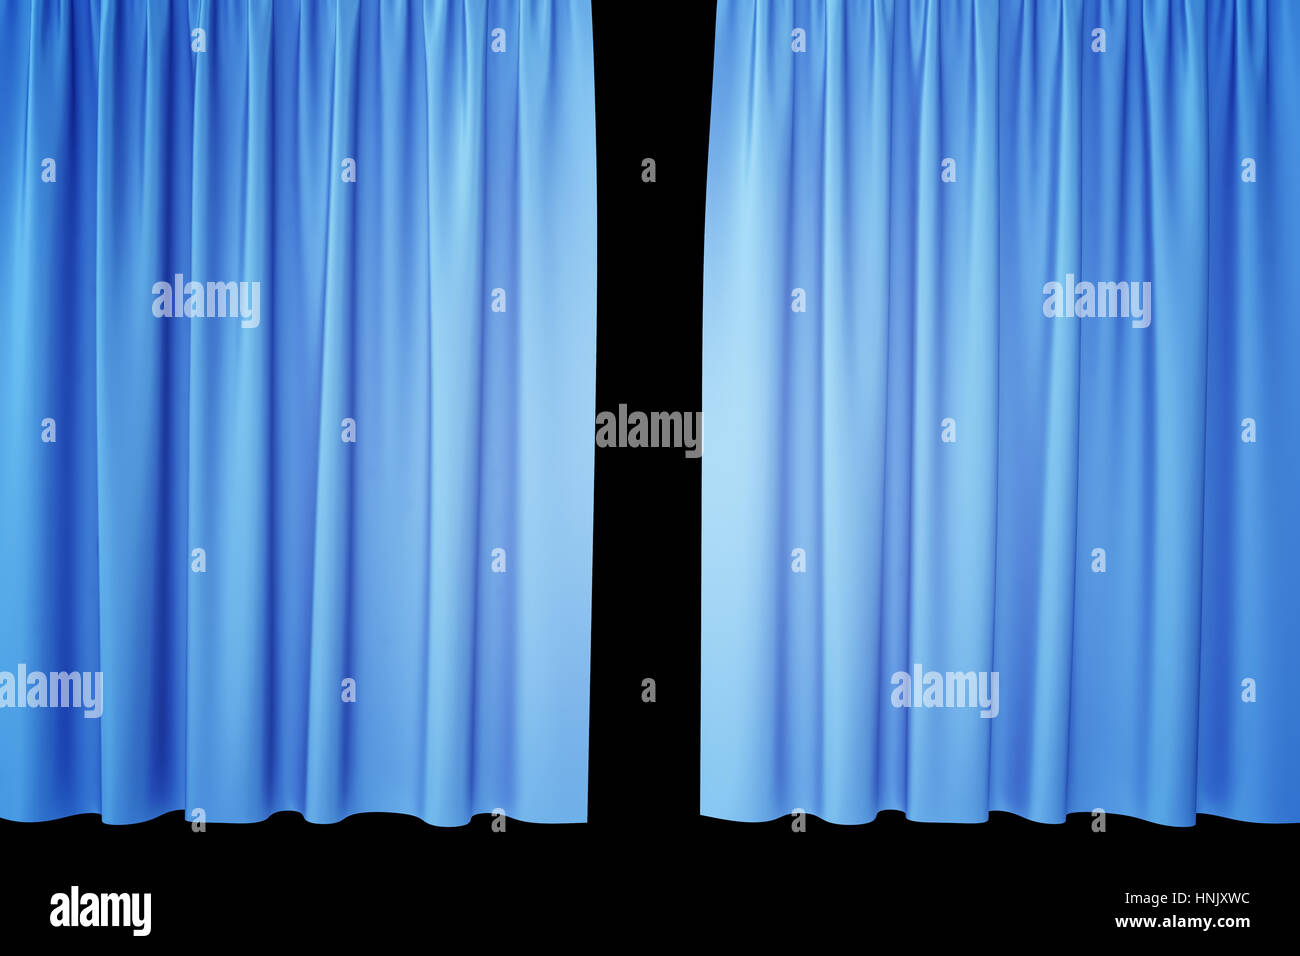 Black And Blue Curtains Open Blue Silk Curtains For Theater And Cinema With A Black Stock